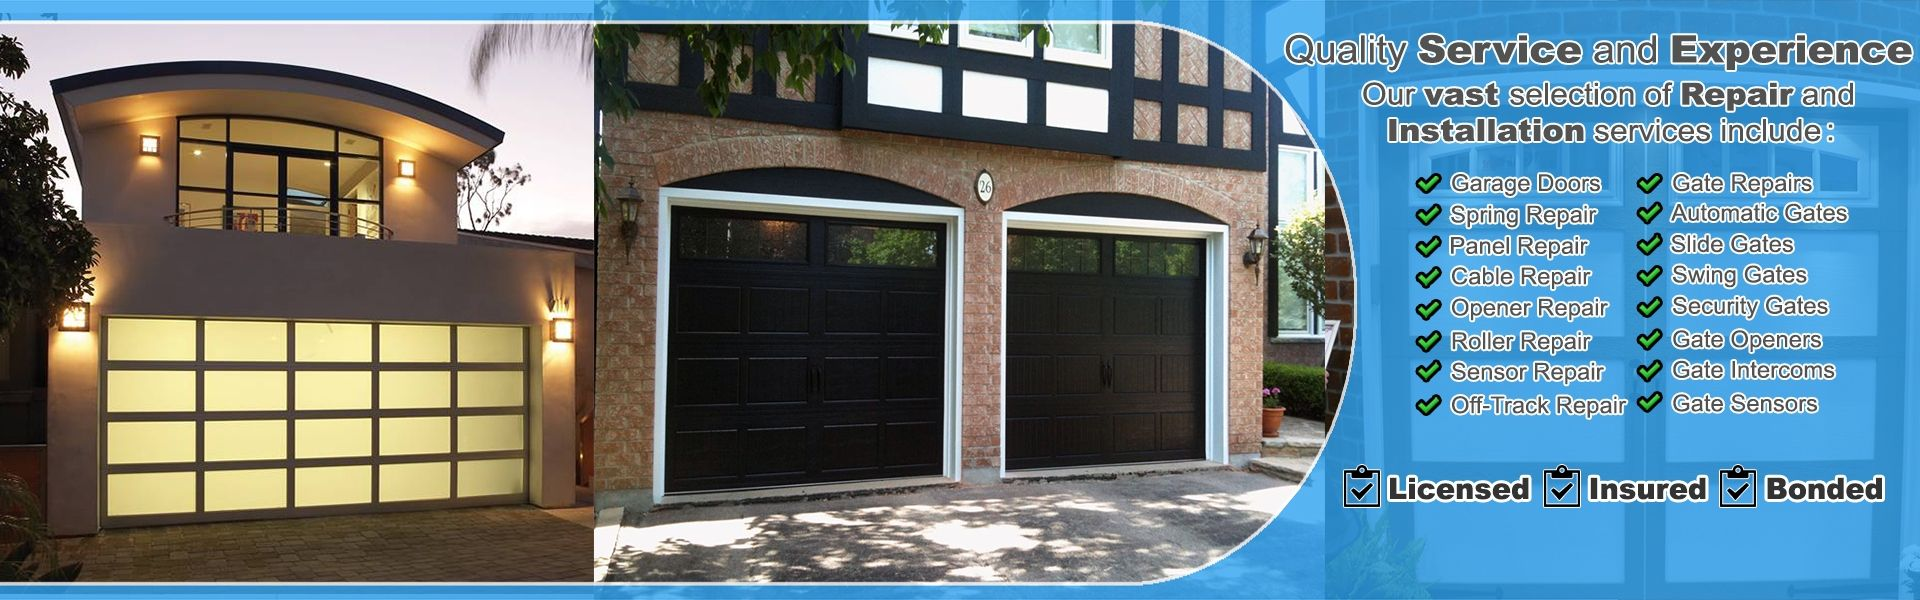 Rpm Garage Door And Gate Service Httpvoteno123 Pinterest